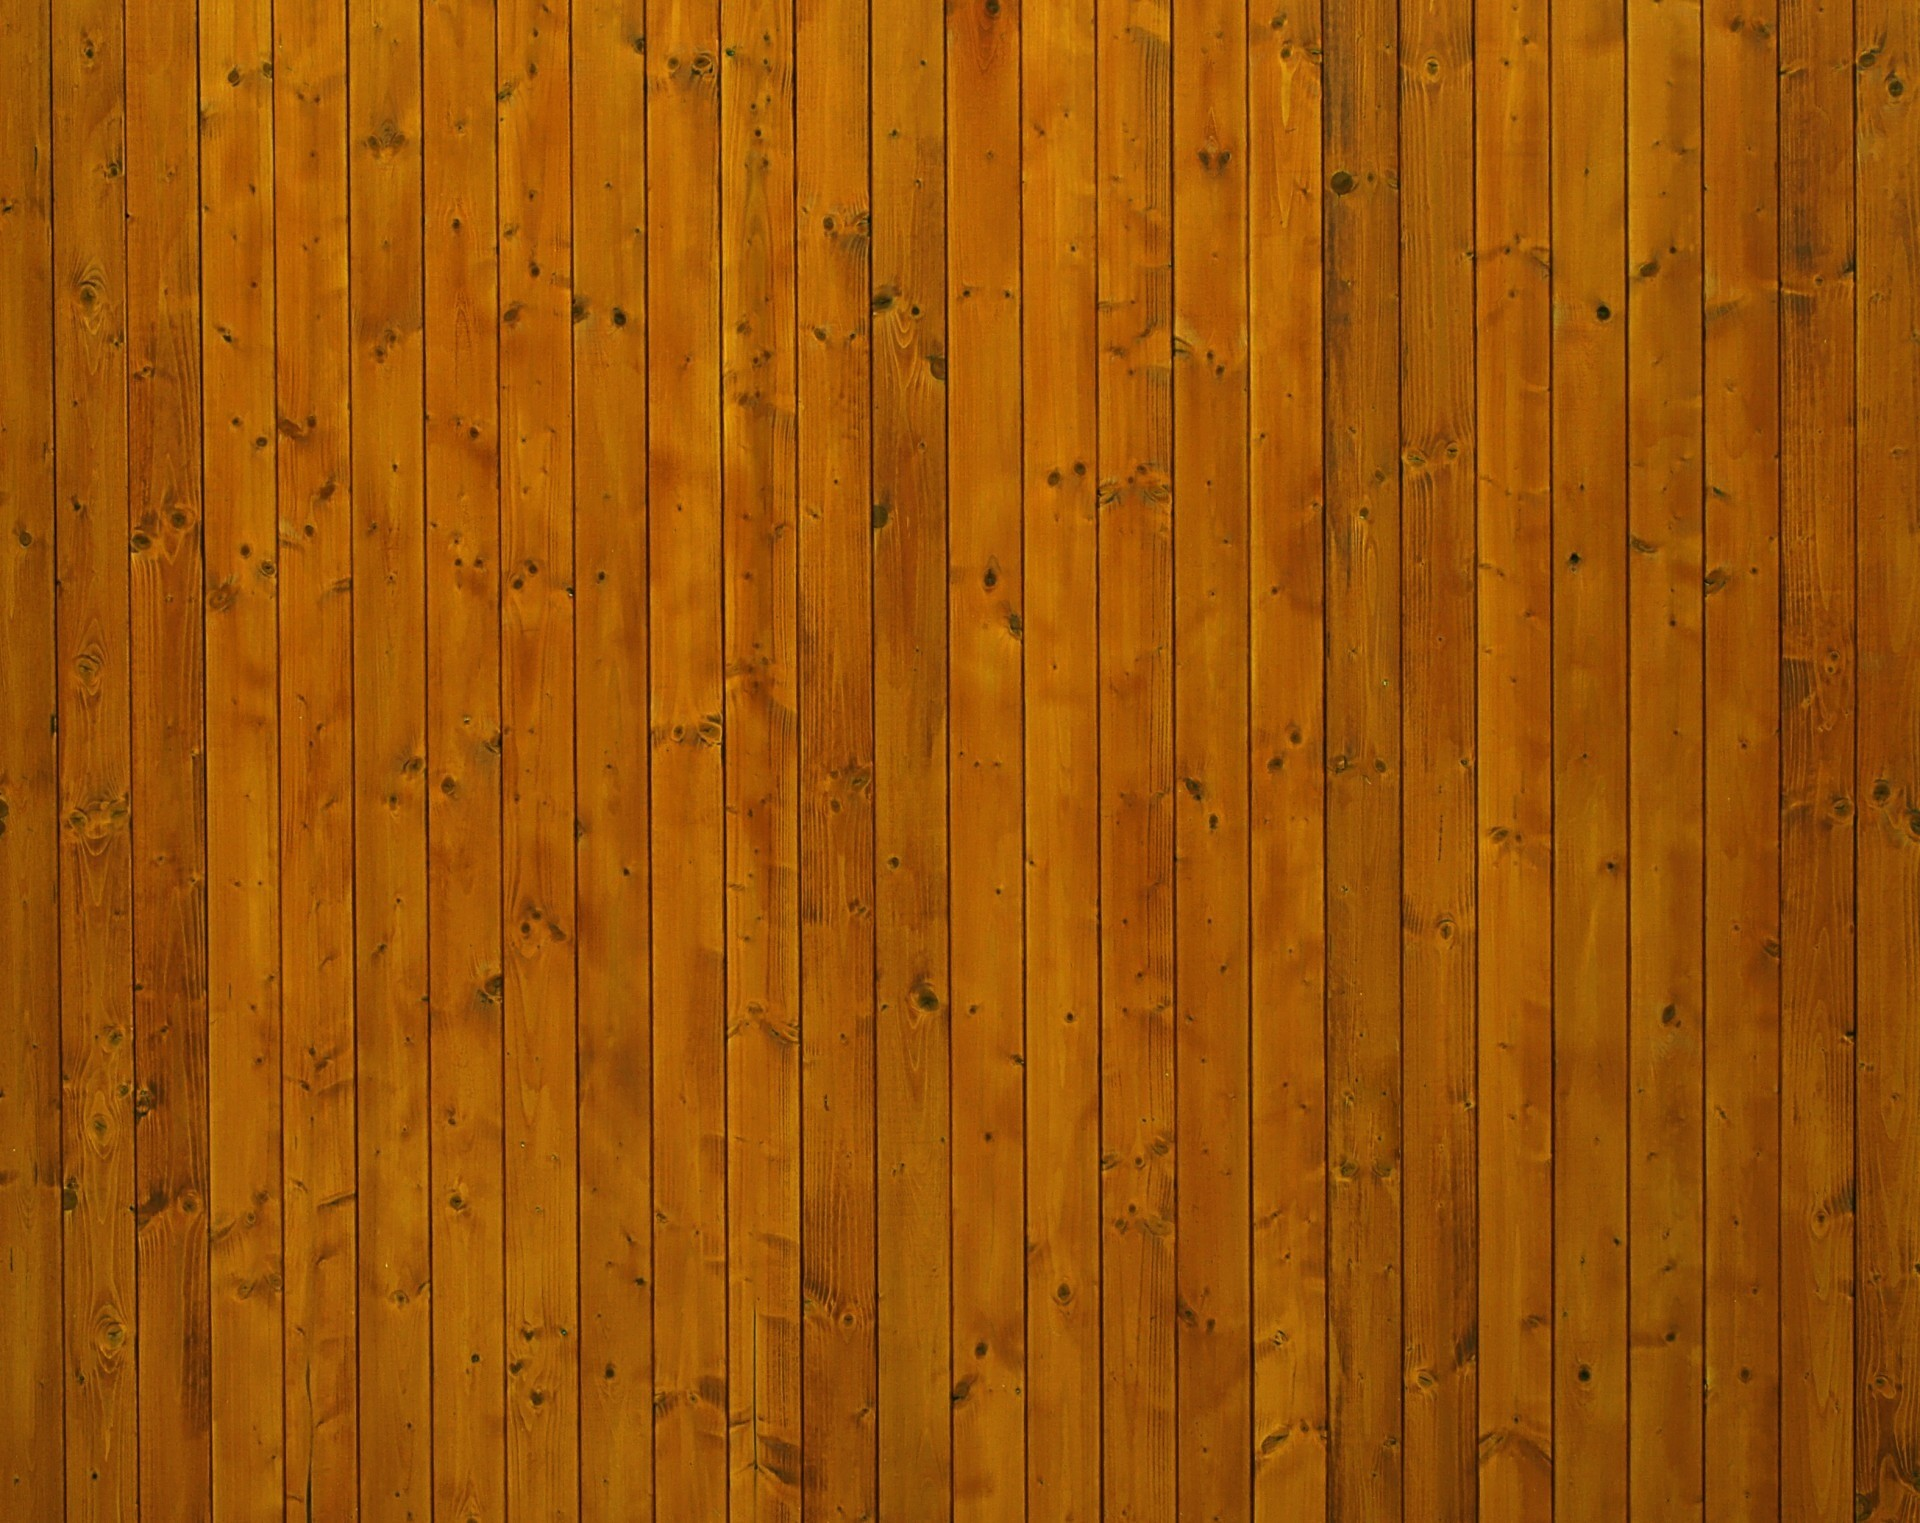 Free Images : fence, deck, board, ground, texture, plank, wall, pattern,  brown, lumber, door, surface, background, hardwood, wooden, wallpaper,  backboard, …